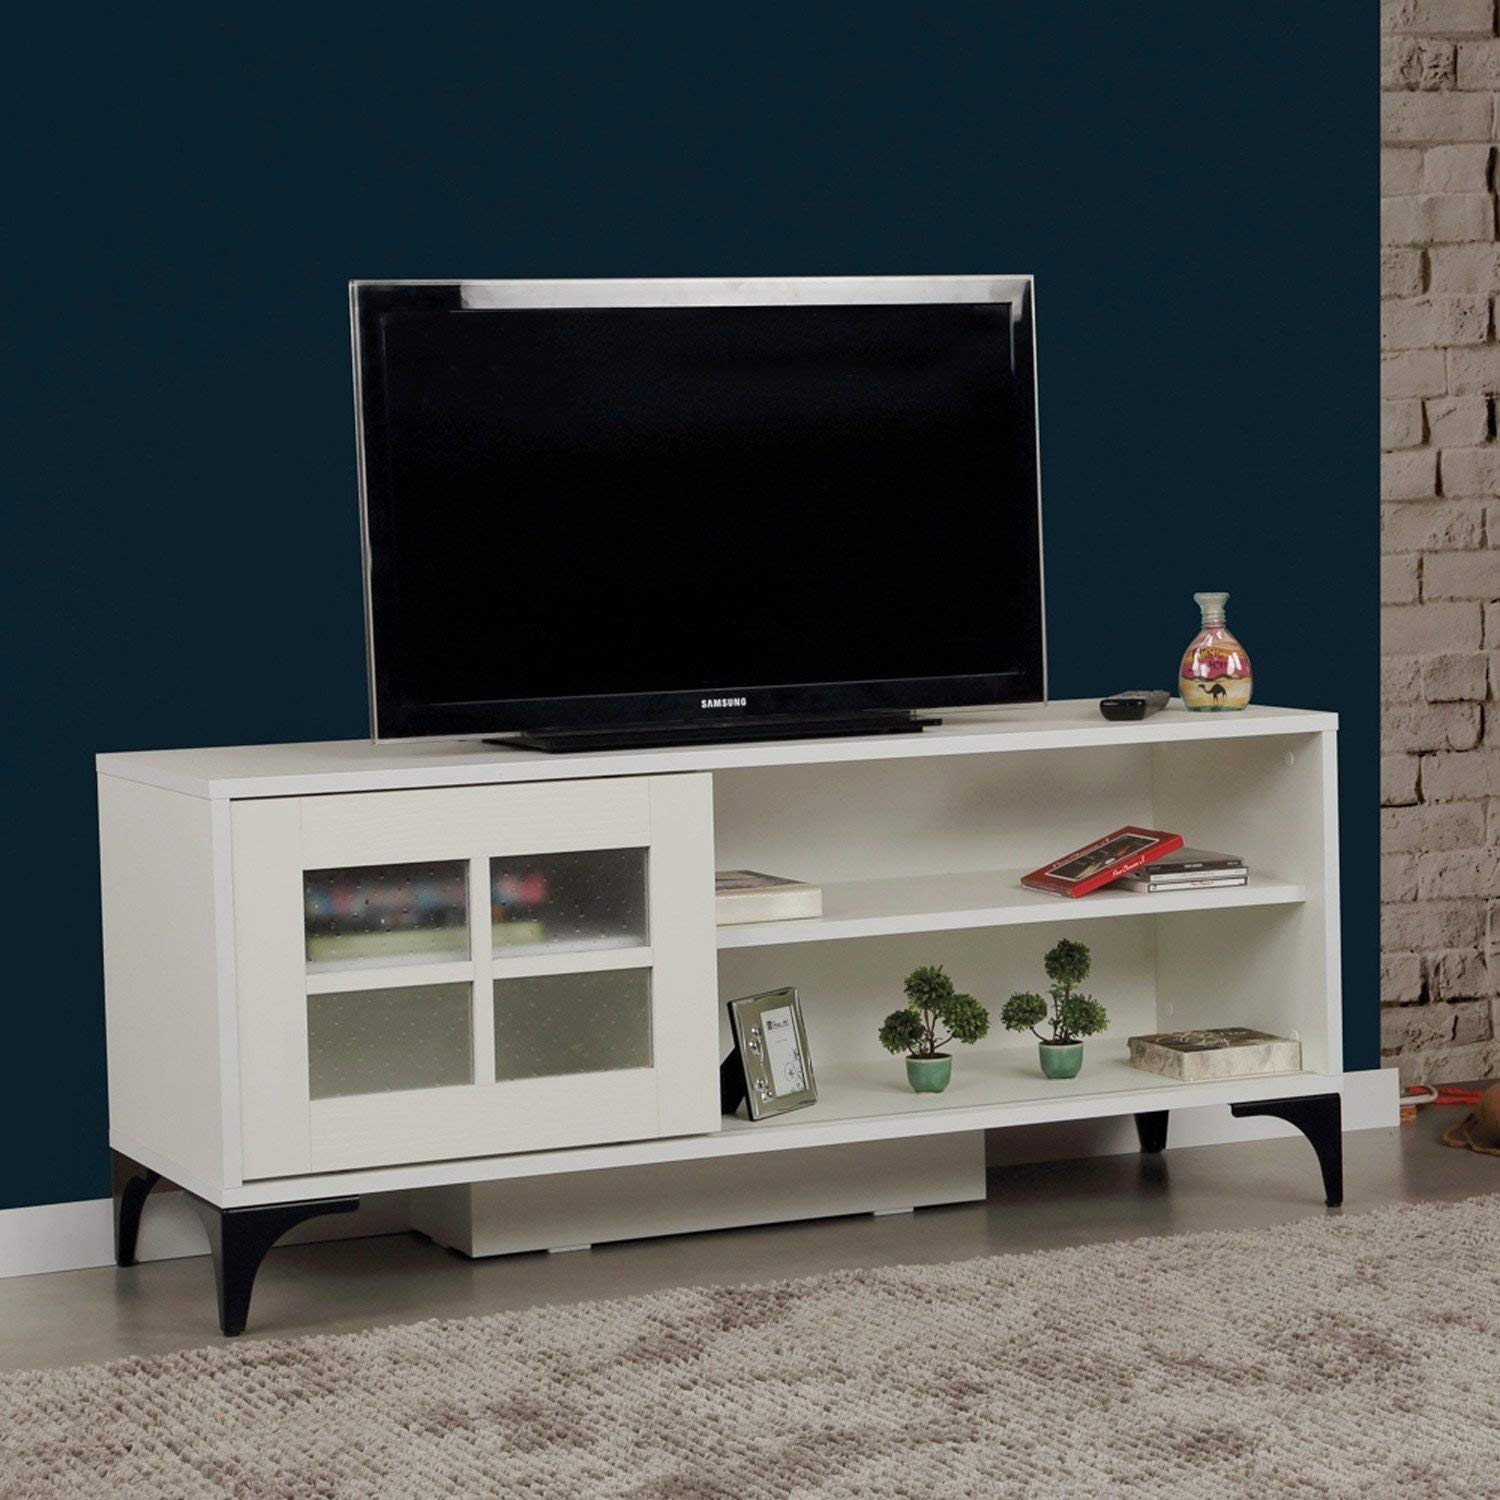 Tv Unit Cheap Cheap Tall Tv Unit Find Tall Tv Unit Deals On Line At Alibaba